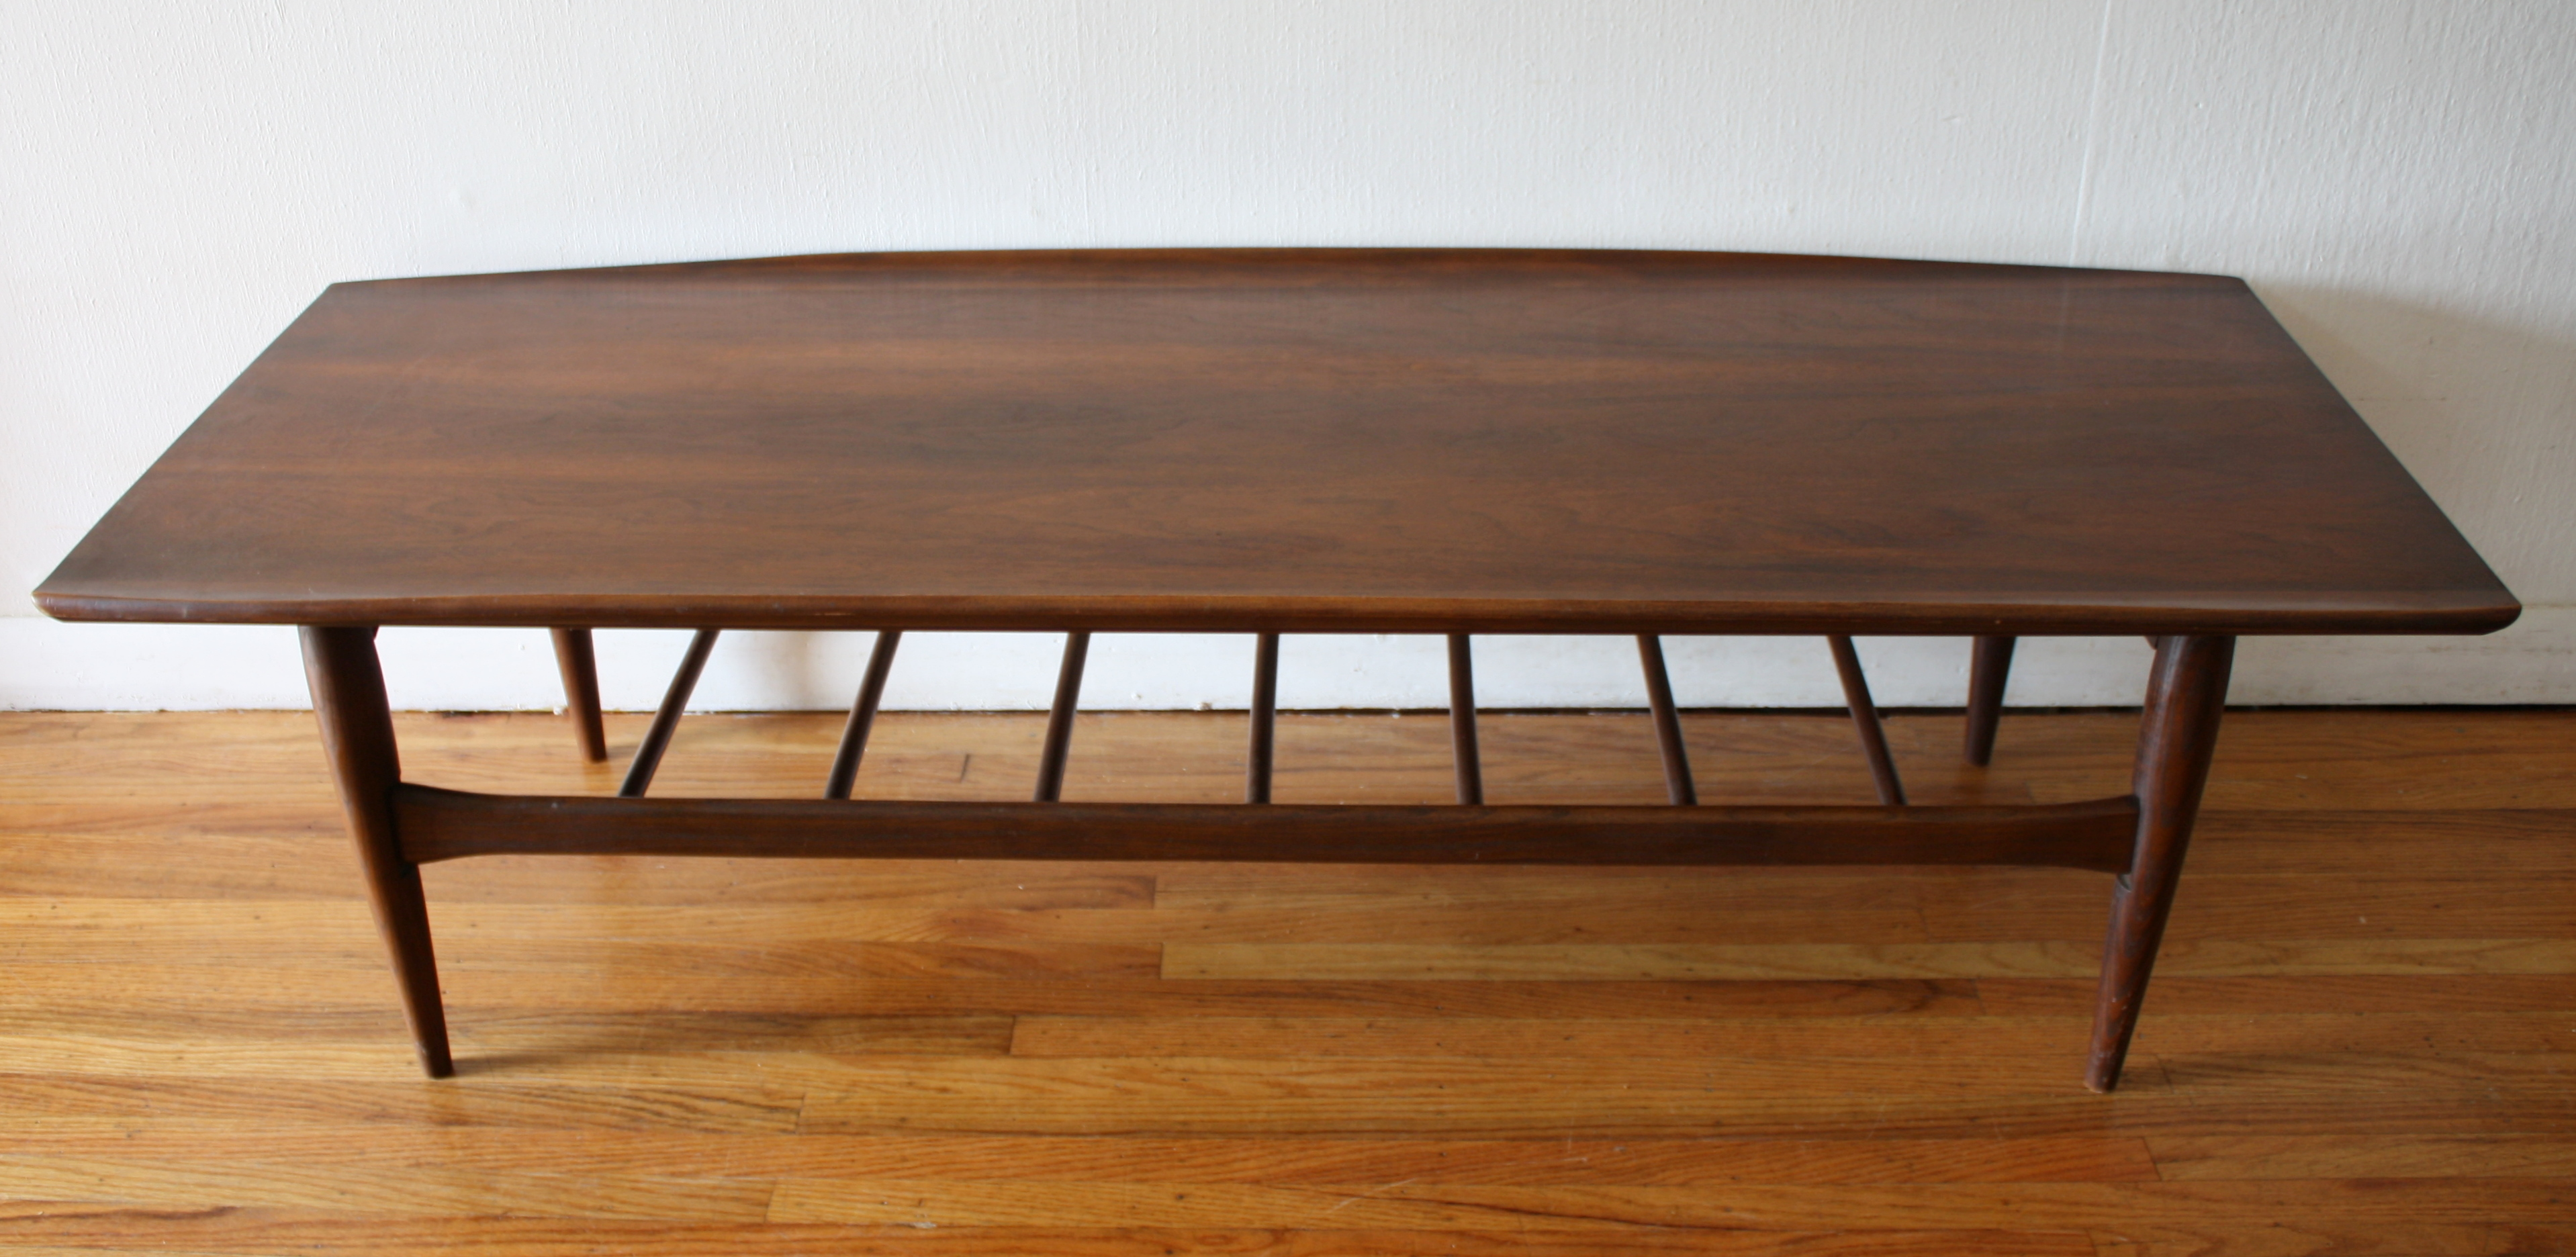 Mid Century Modern Surfboard Coffee Table with Slatted Shelf